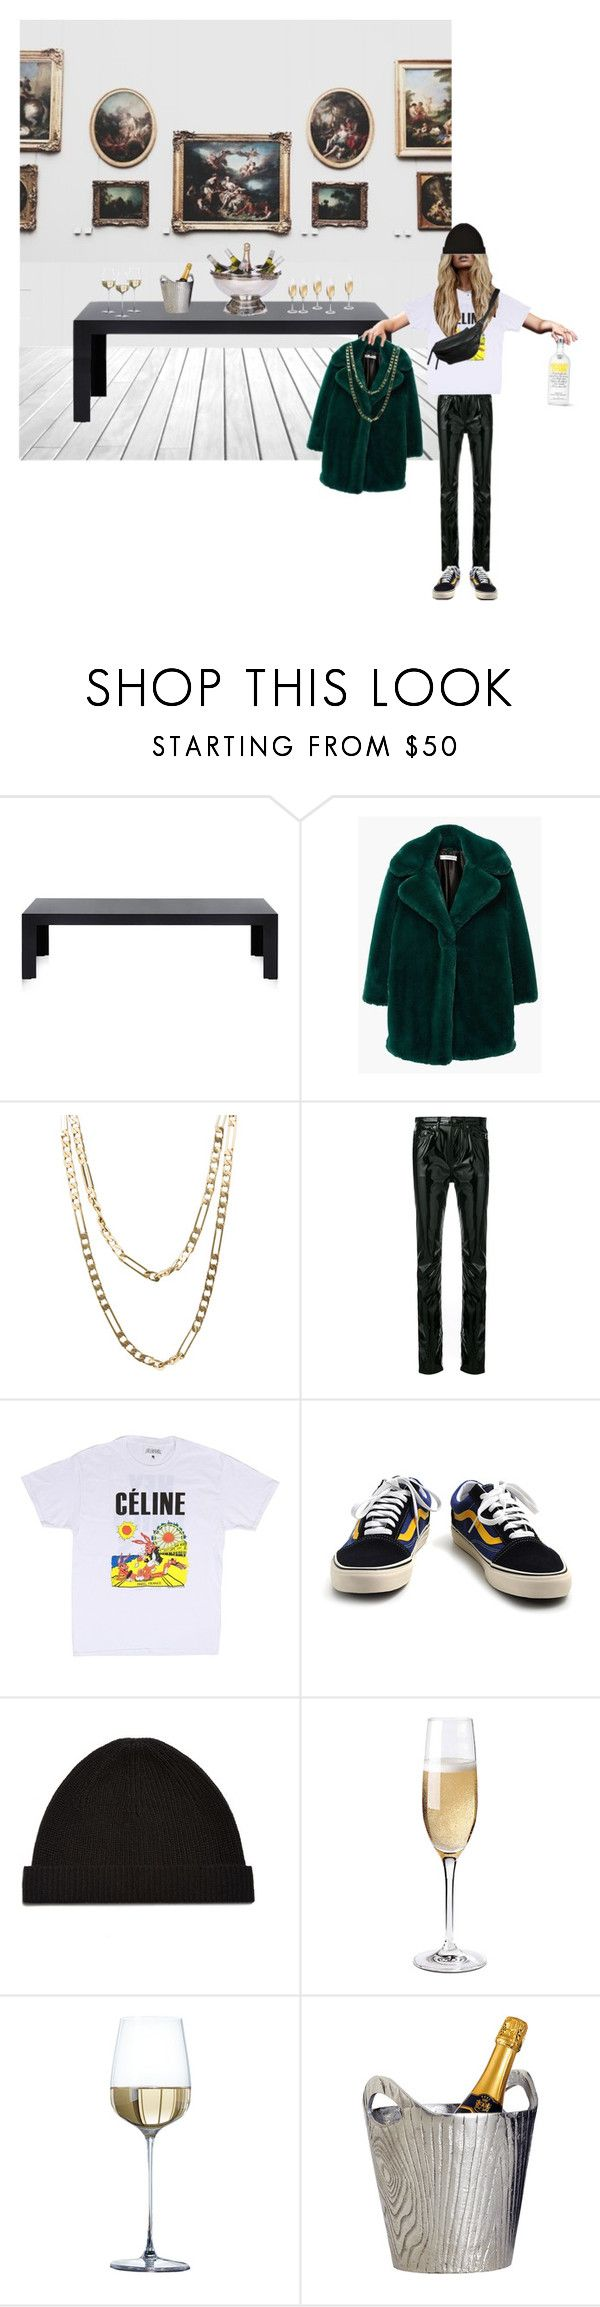 """Untitled #242"" by fashiondisguise on Polyvore featuring Kartell, MANGO, Cartier, Yves Saint Laurent, Yvonne Koné, Vans, Helmut Lang, Wine Enthusiast and Dot & Bo"